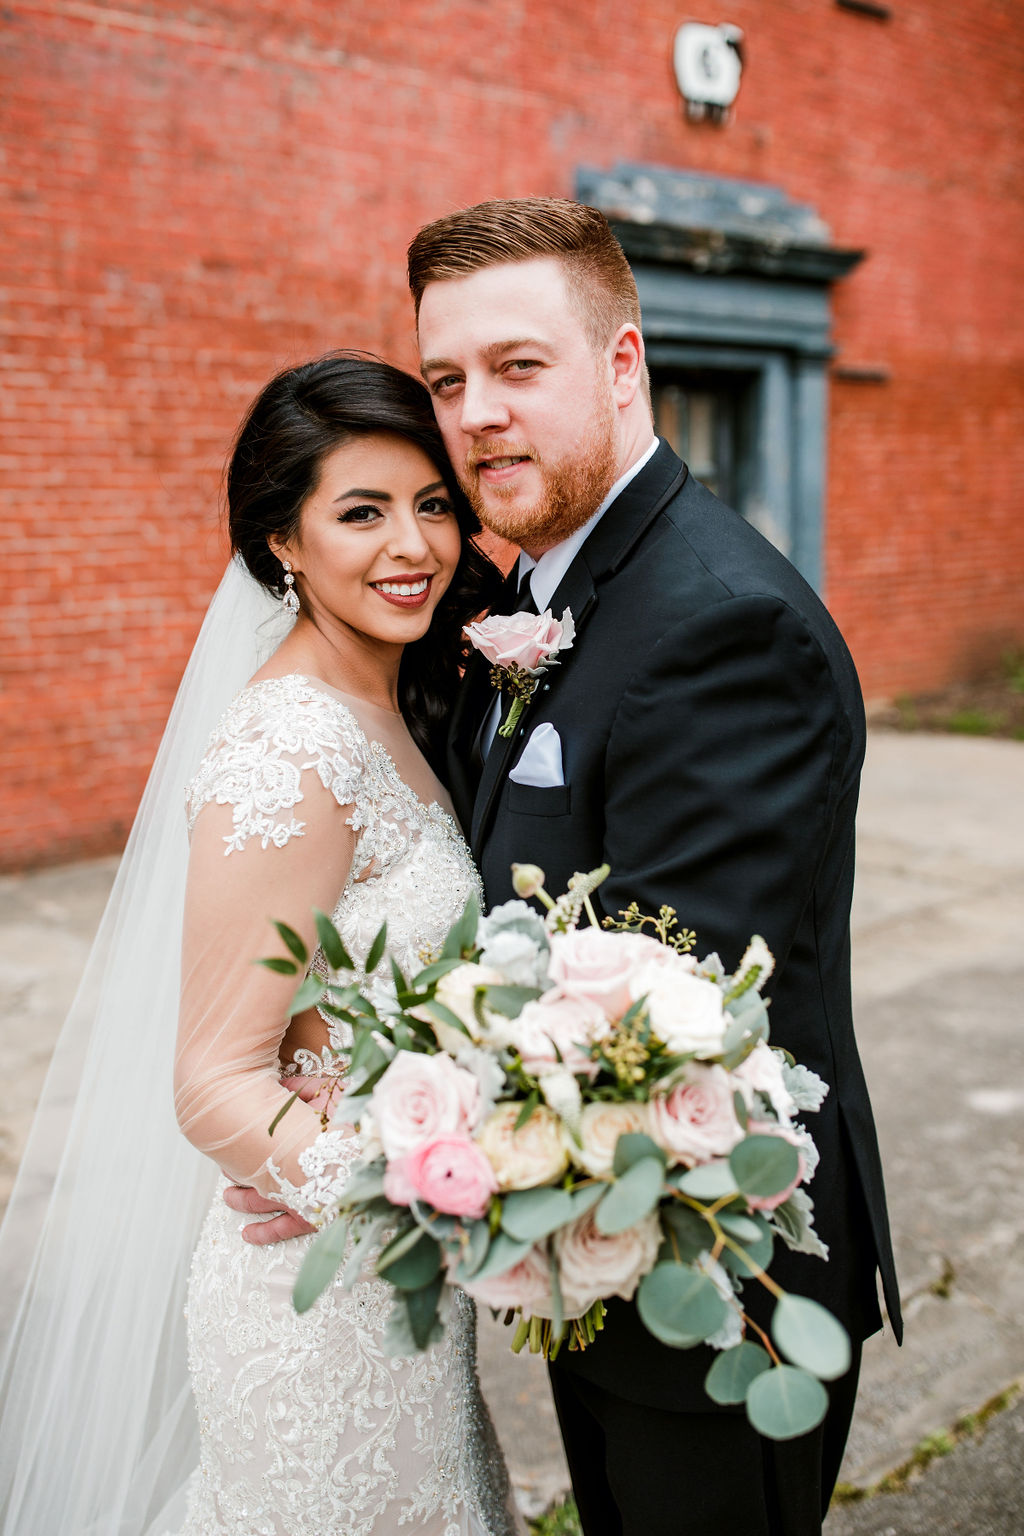 John Myers Photography portrait: Wedding at The Mill captured by John Myers Photography featured on Nashville Bride Guide